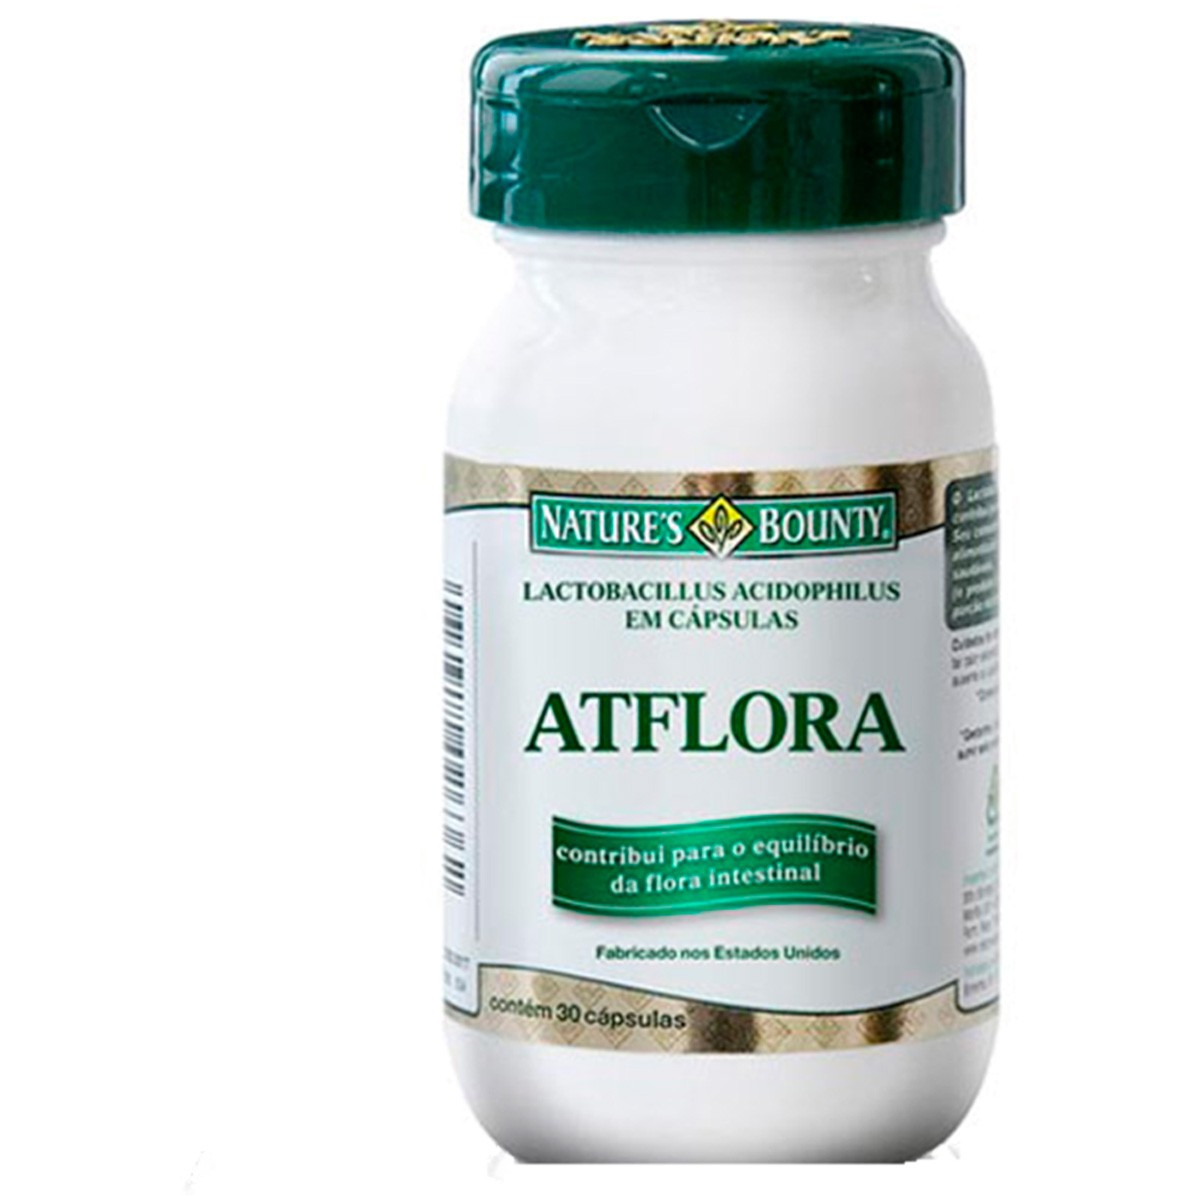 Atflora - Natures Bounty - 30 Cápsulas 470mg